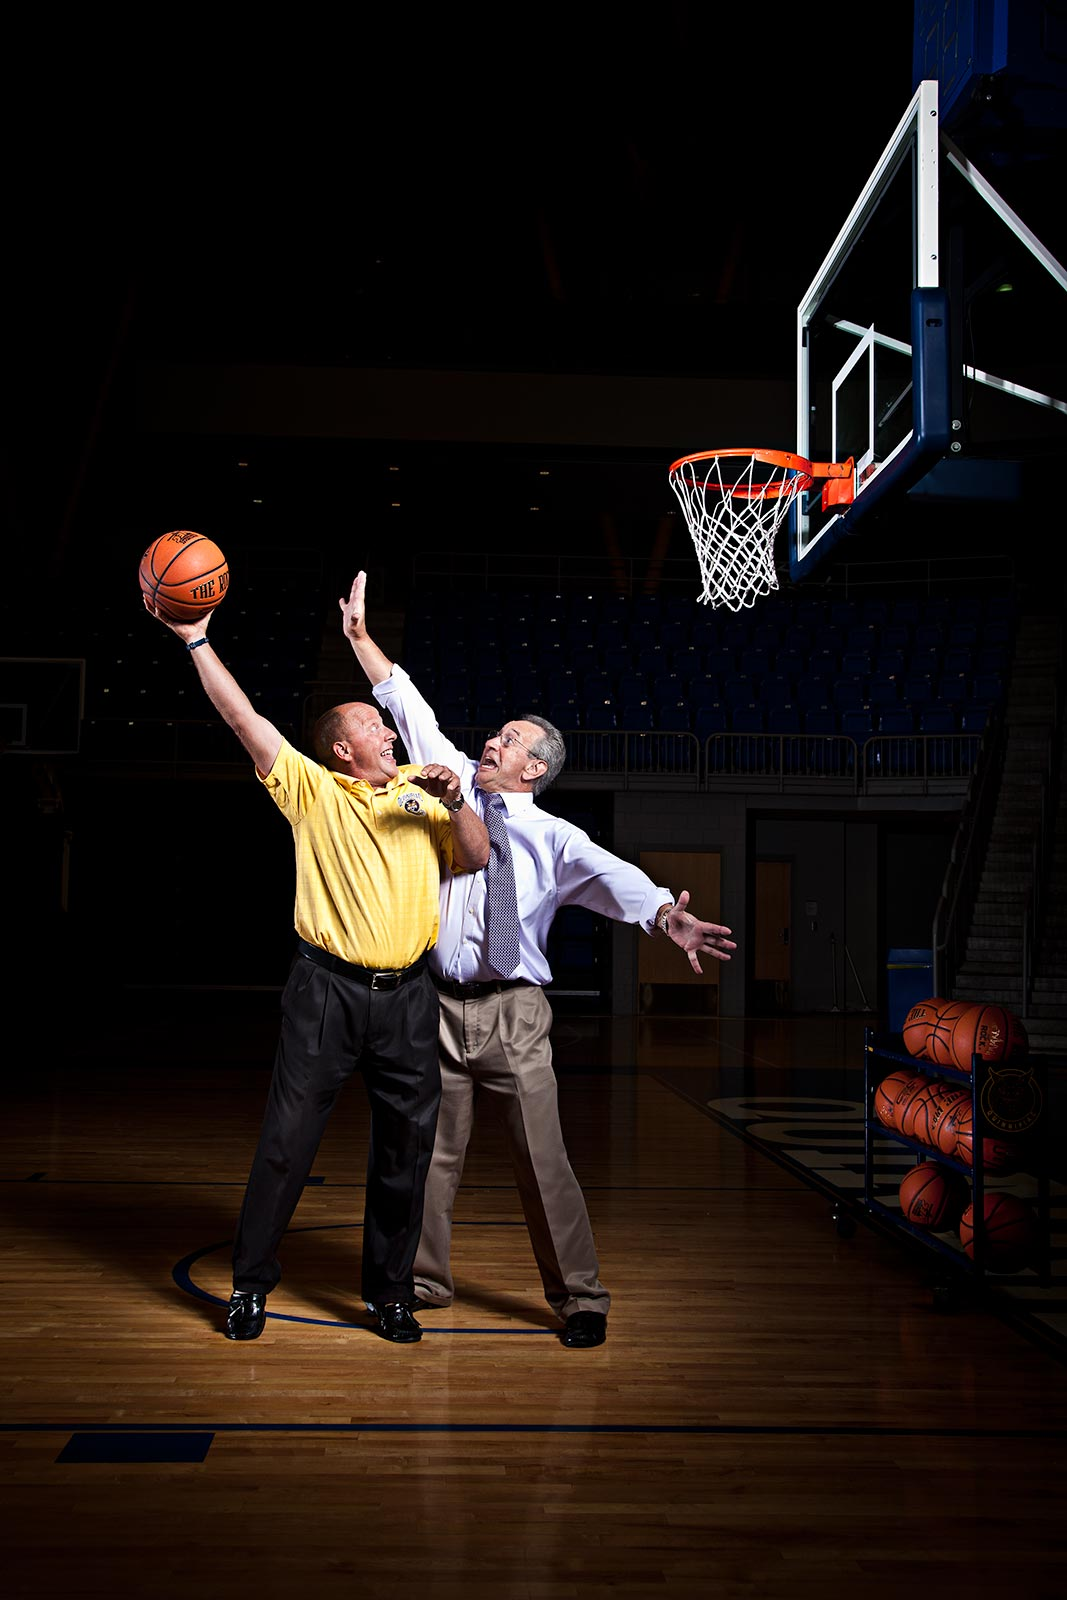 dramatic scene of two sports announcers playing basketball wearing suits in areana